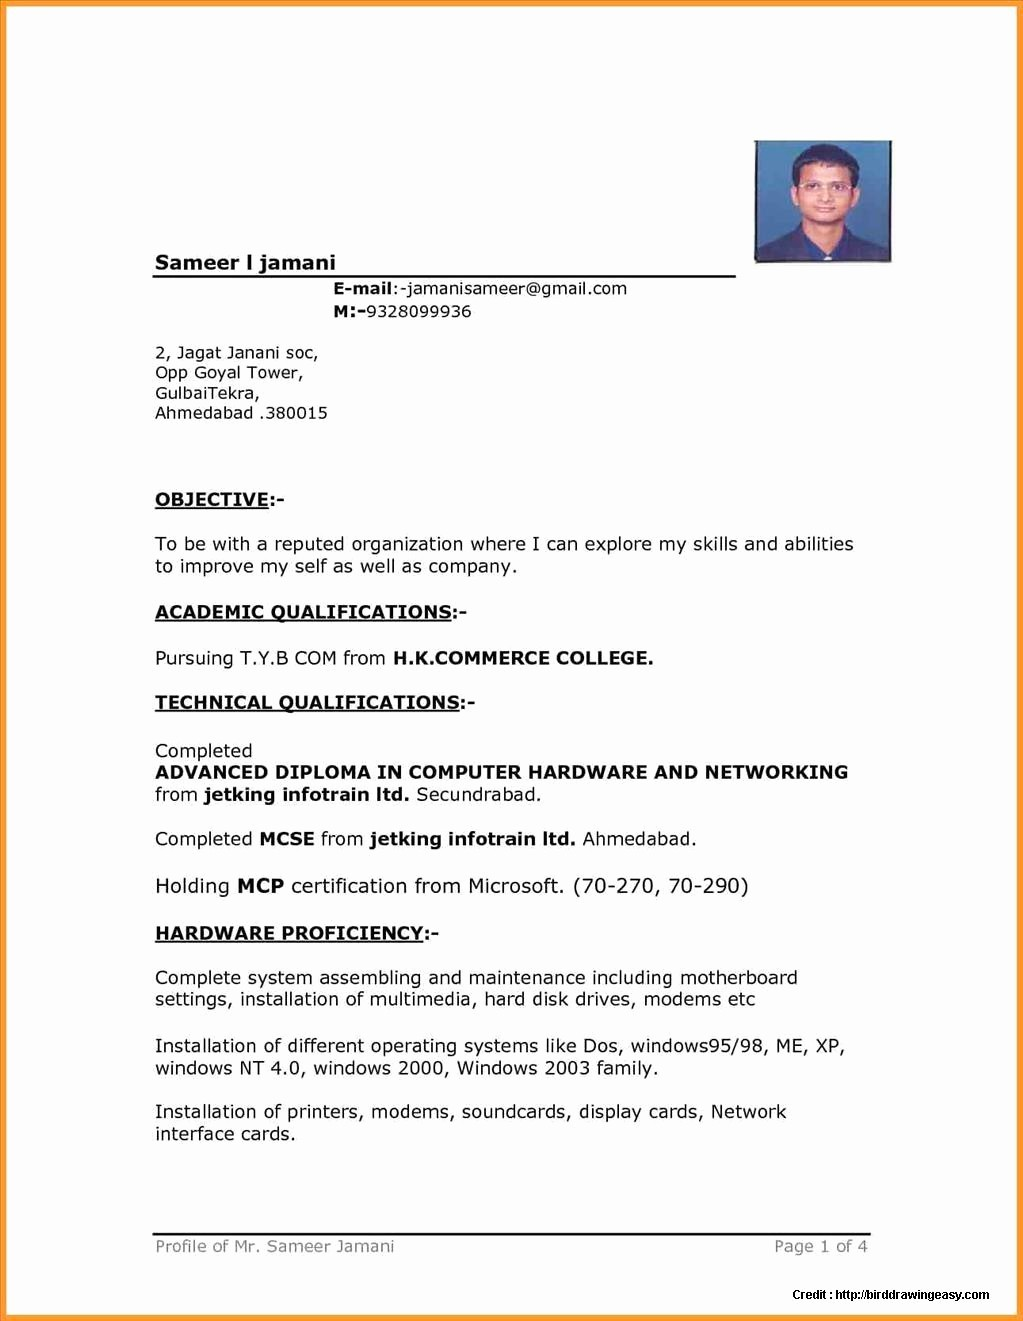 Sample Resume In Word format Fresh Sample Resume Free Download In Word format Resume